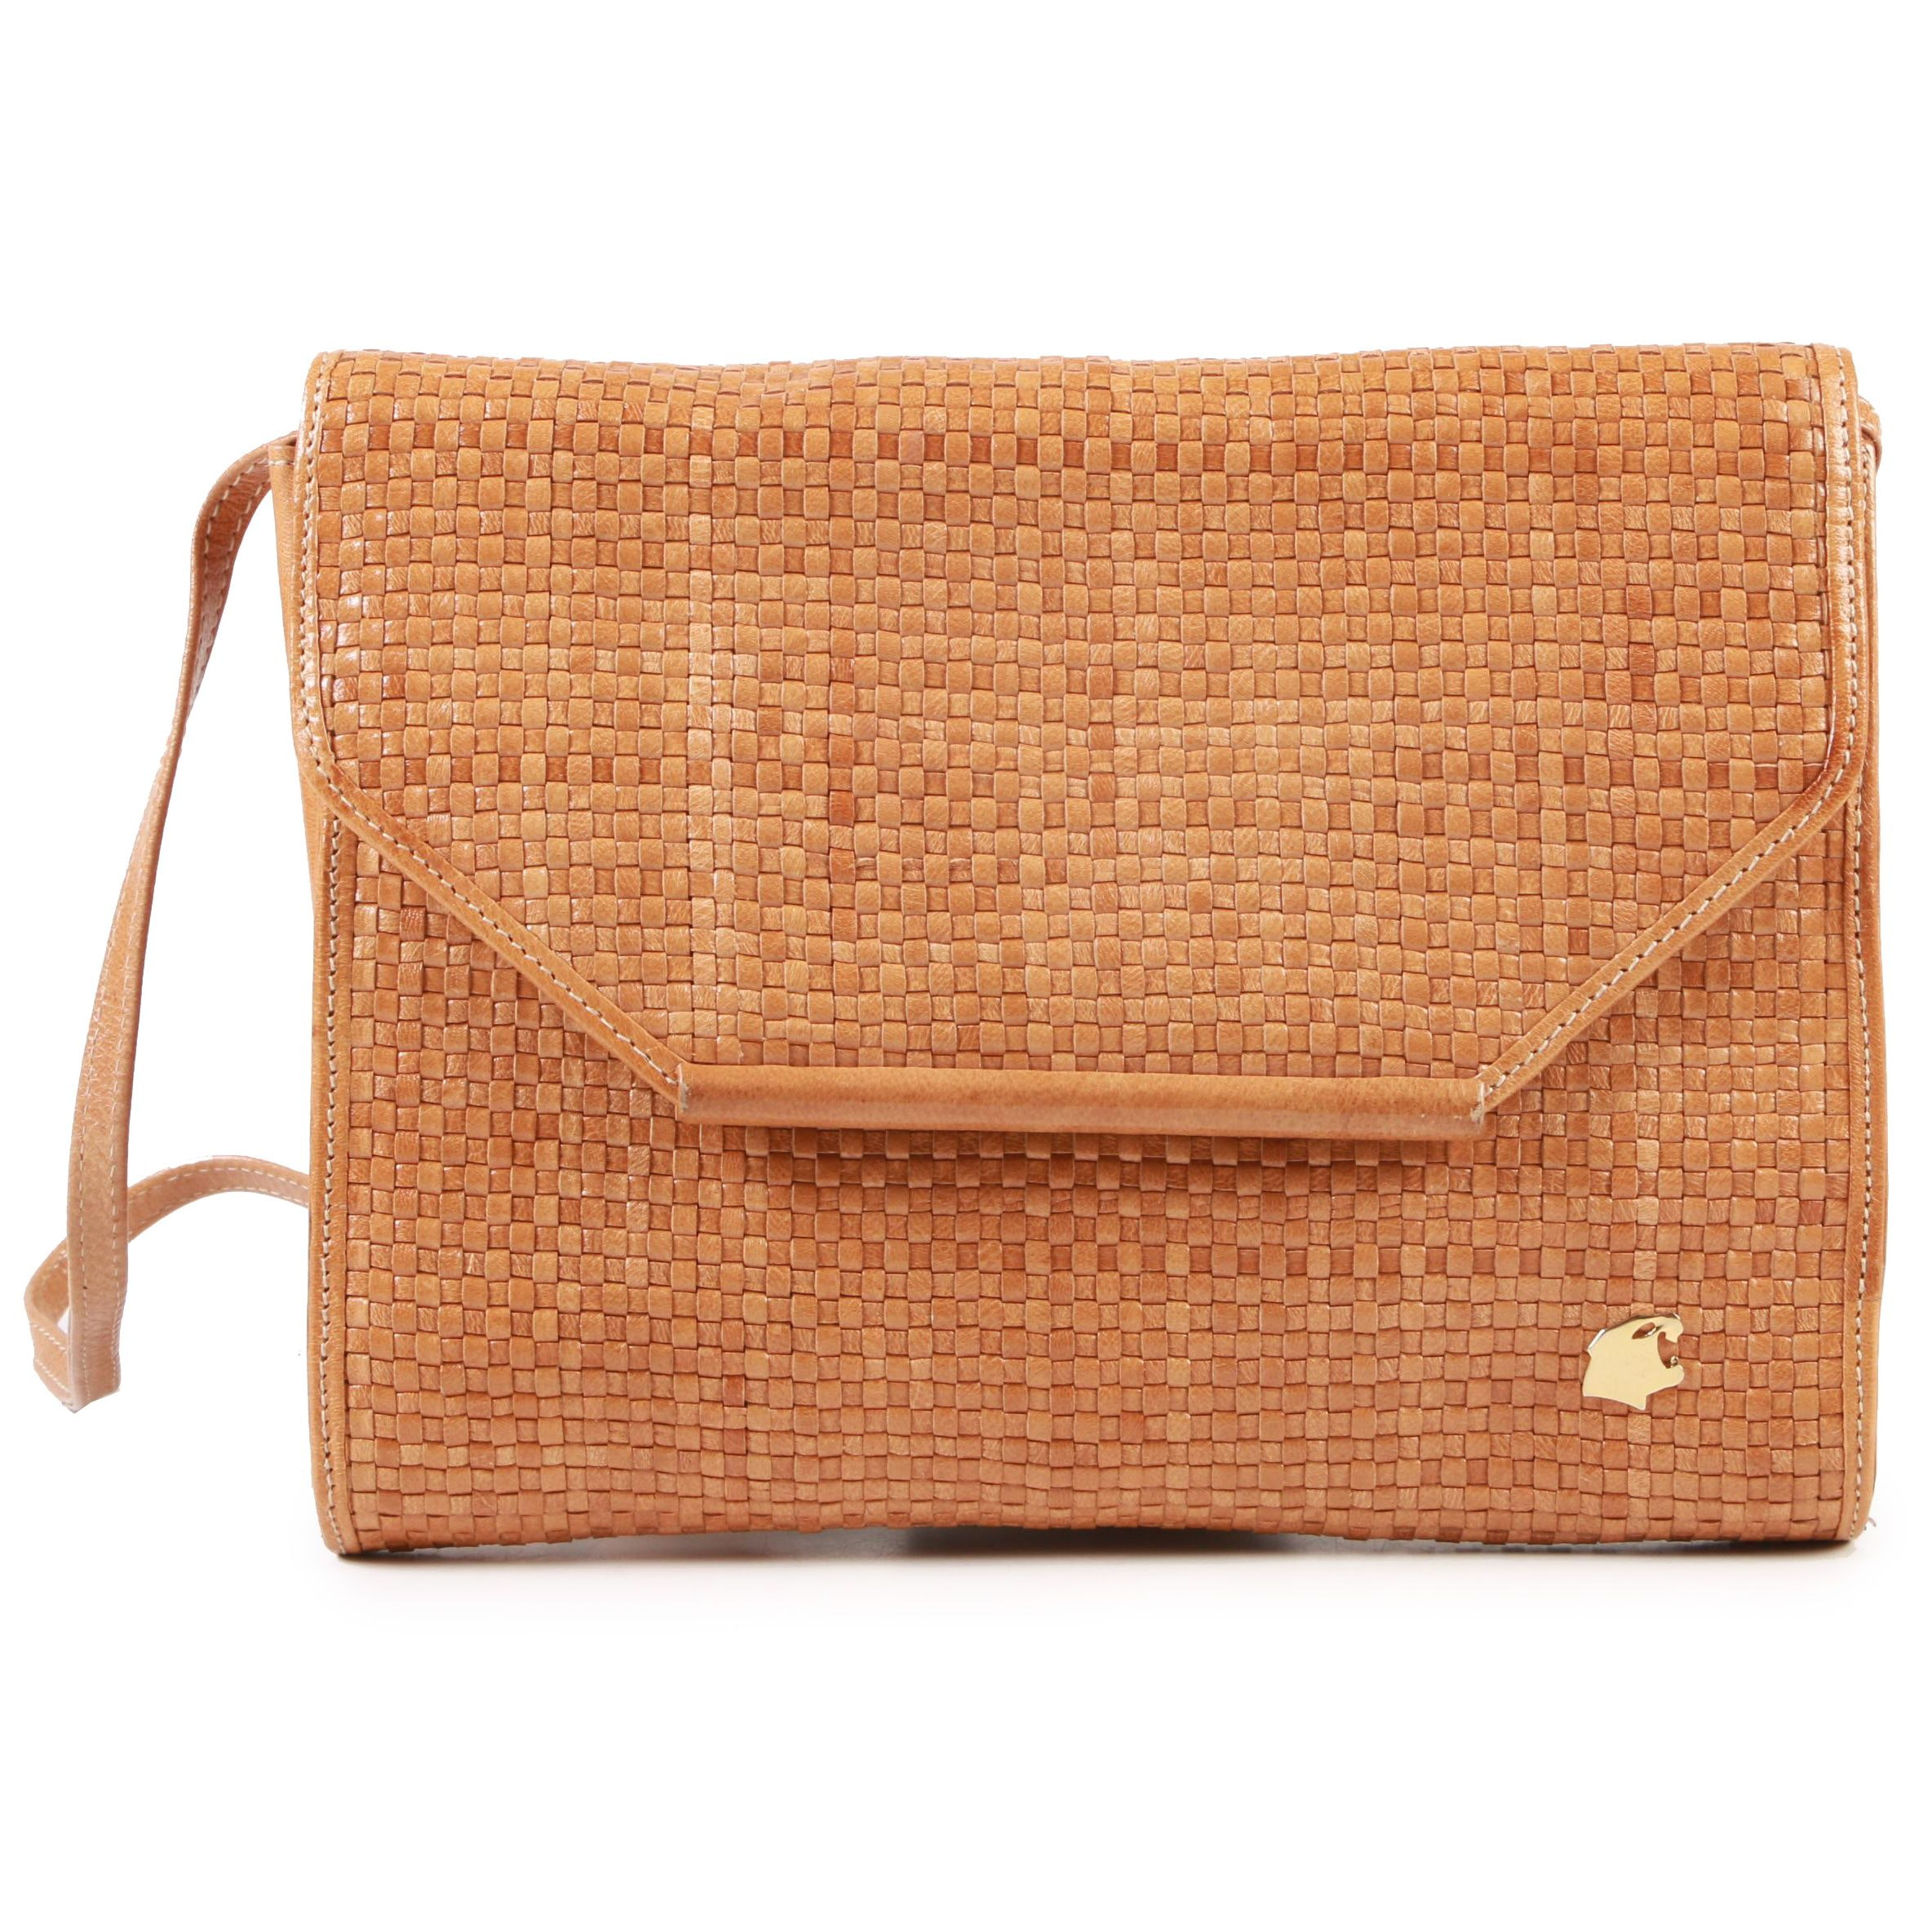 Bagheera Camel Tan Woven Leather Shoulder Bag